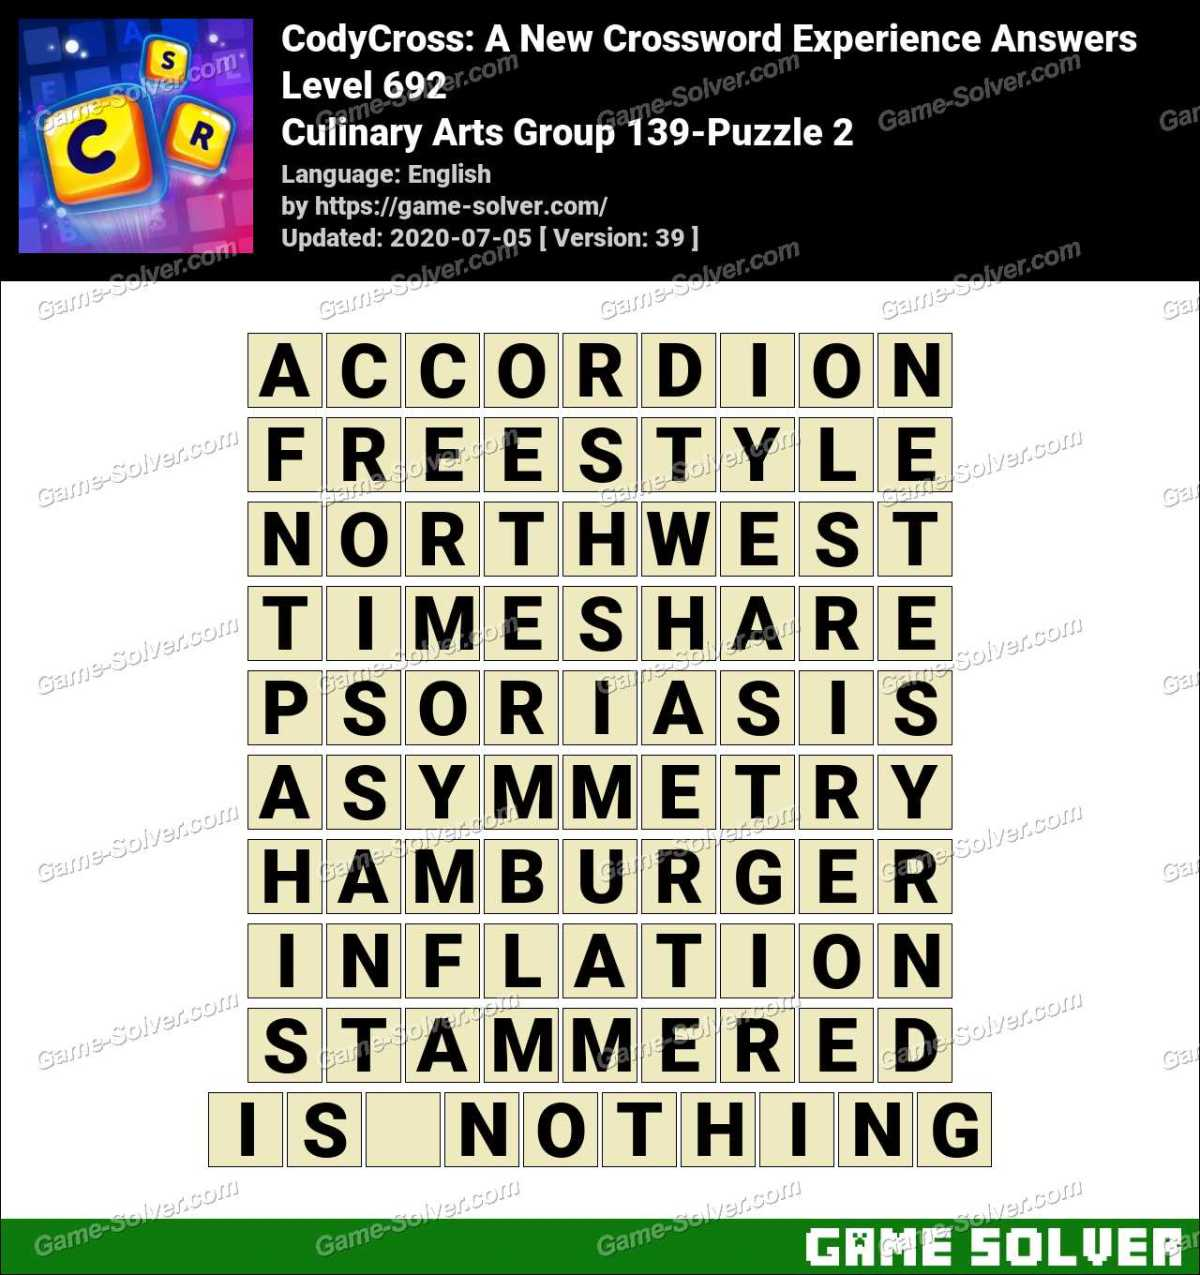 CodyCross Culinary Arts Group 139-Puzzle 2 Answers